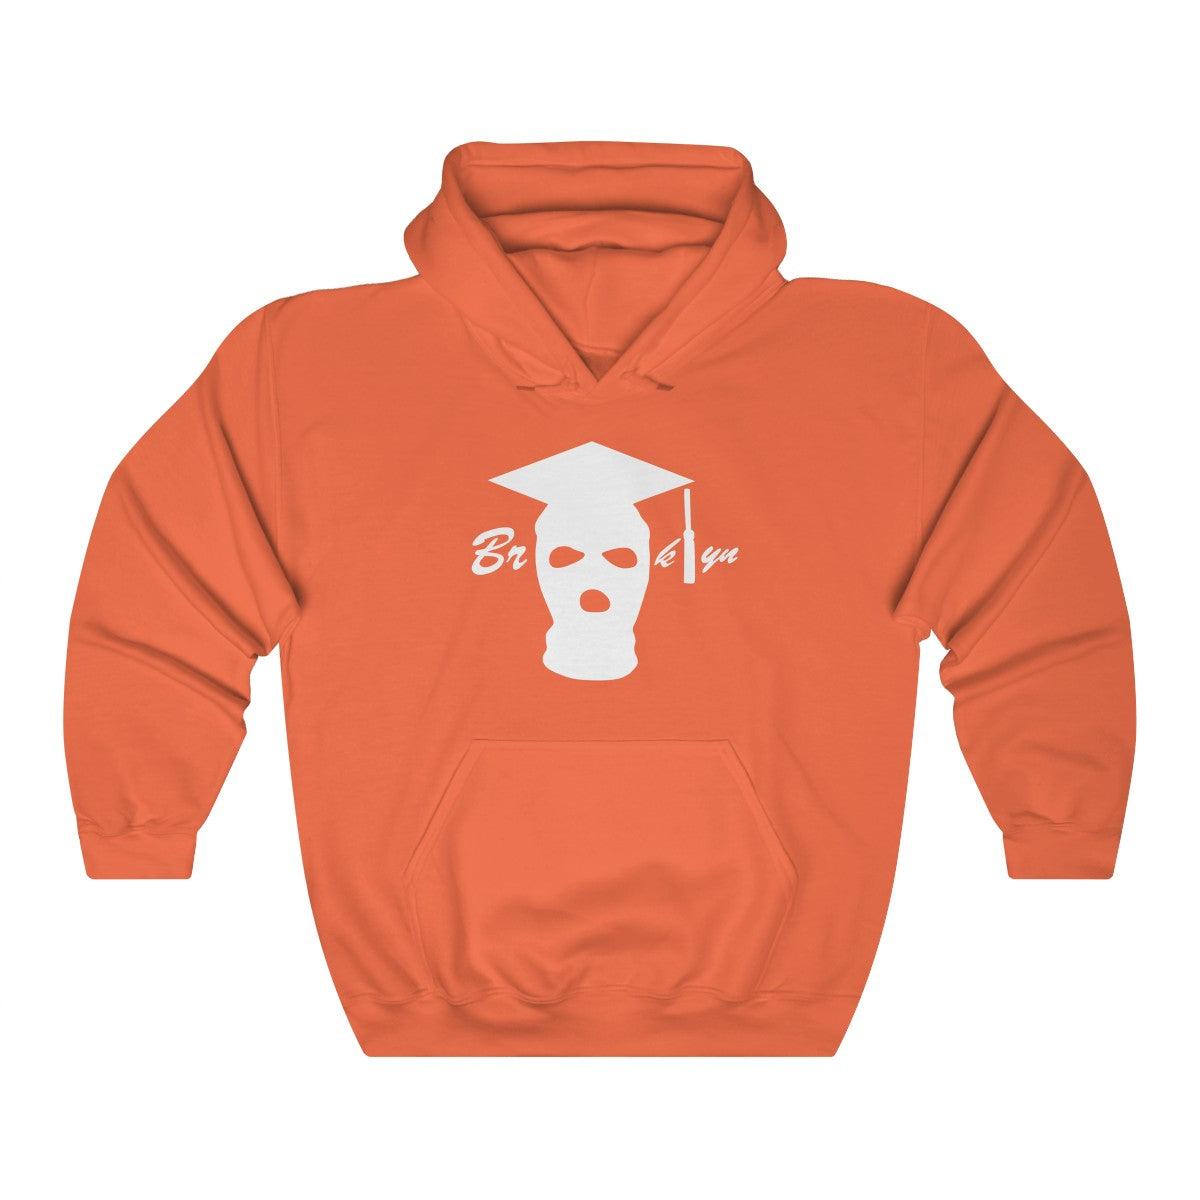 ORANGE COLLECTION GRADUATION HOODIES